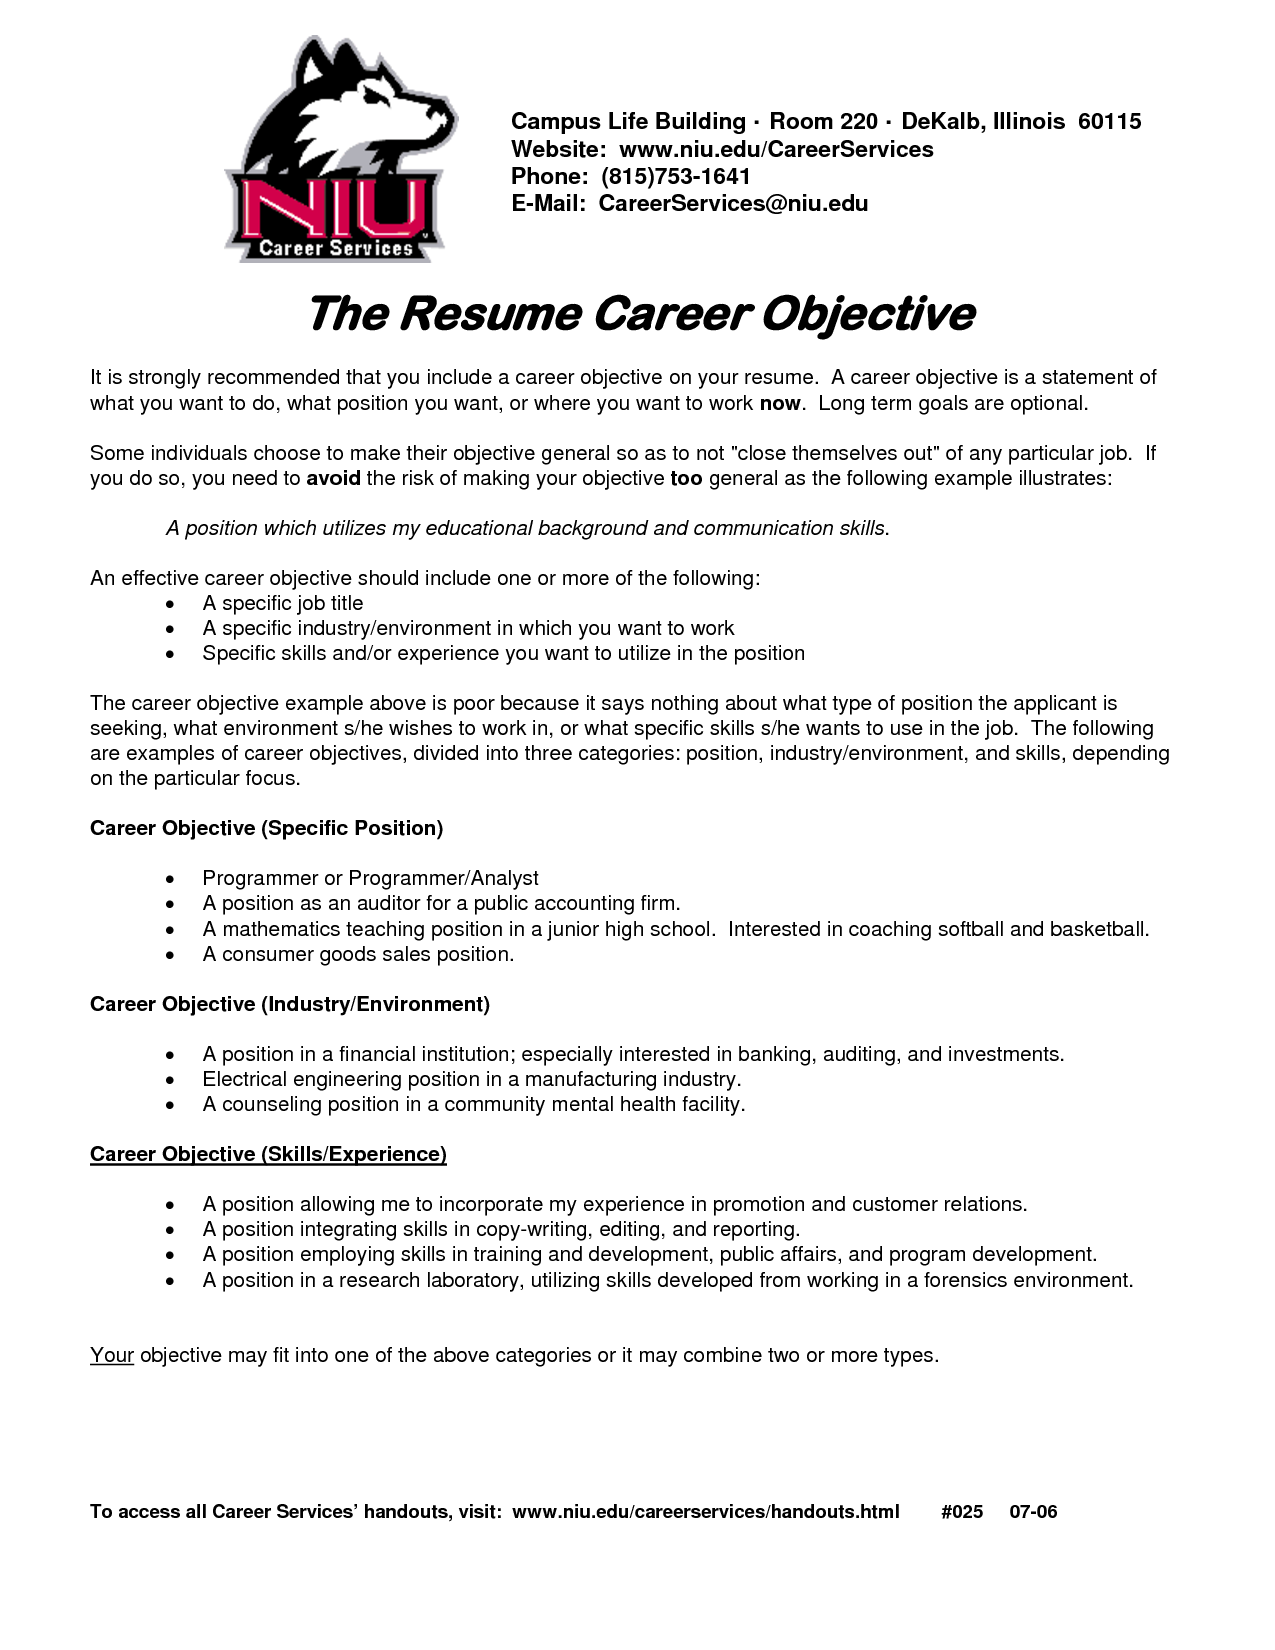 Simple Job Resume Template Httpswwwgooglesearchqobjective Resume  Resume